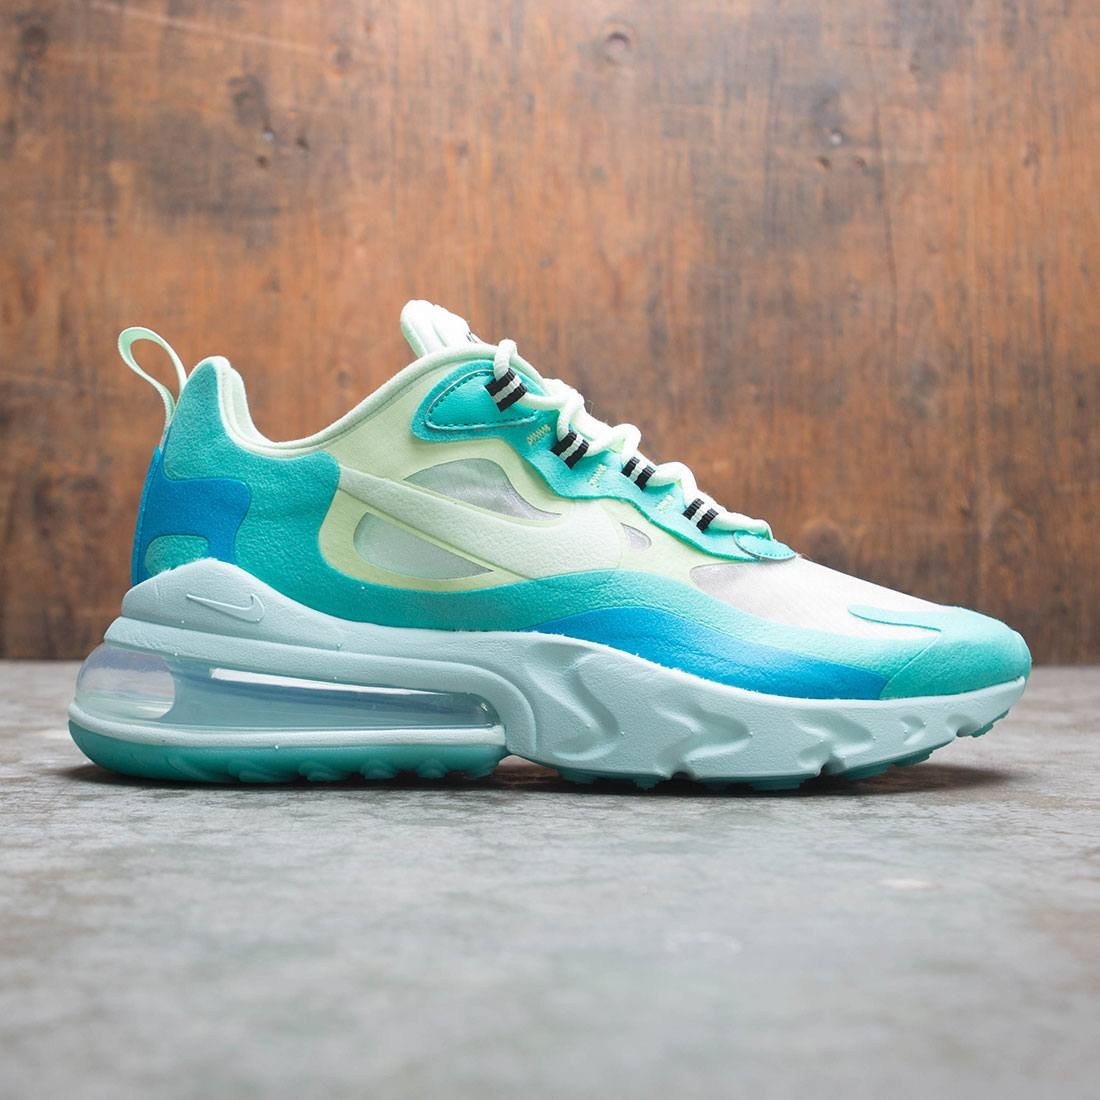 hot sale online 8cd6c 77fc9 Nike Men Air Max 270 React (hyper jade / frosted spruce-barely volt)